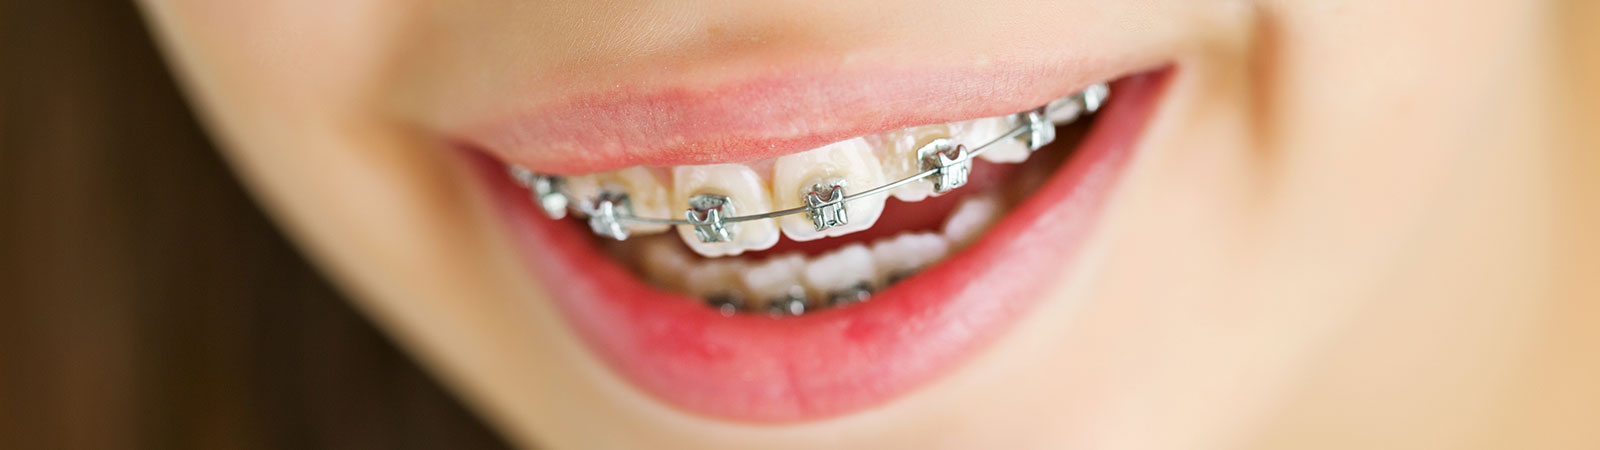 close up to a teens teeth with Self-Ligating Braces